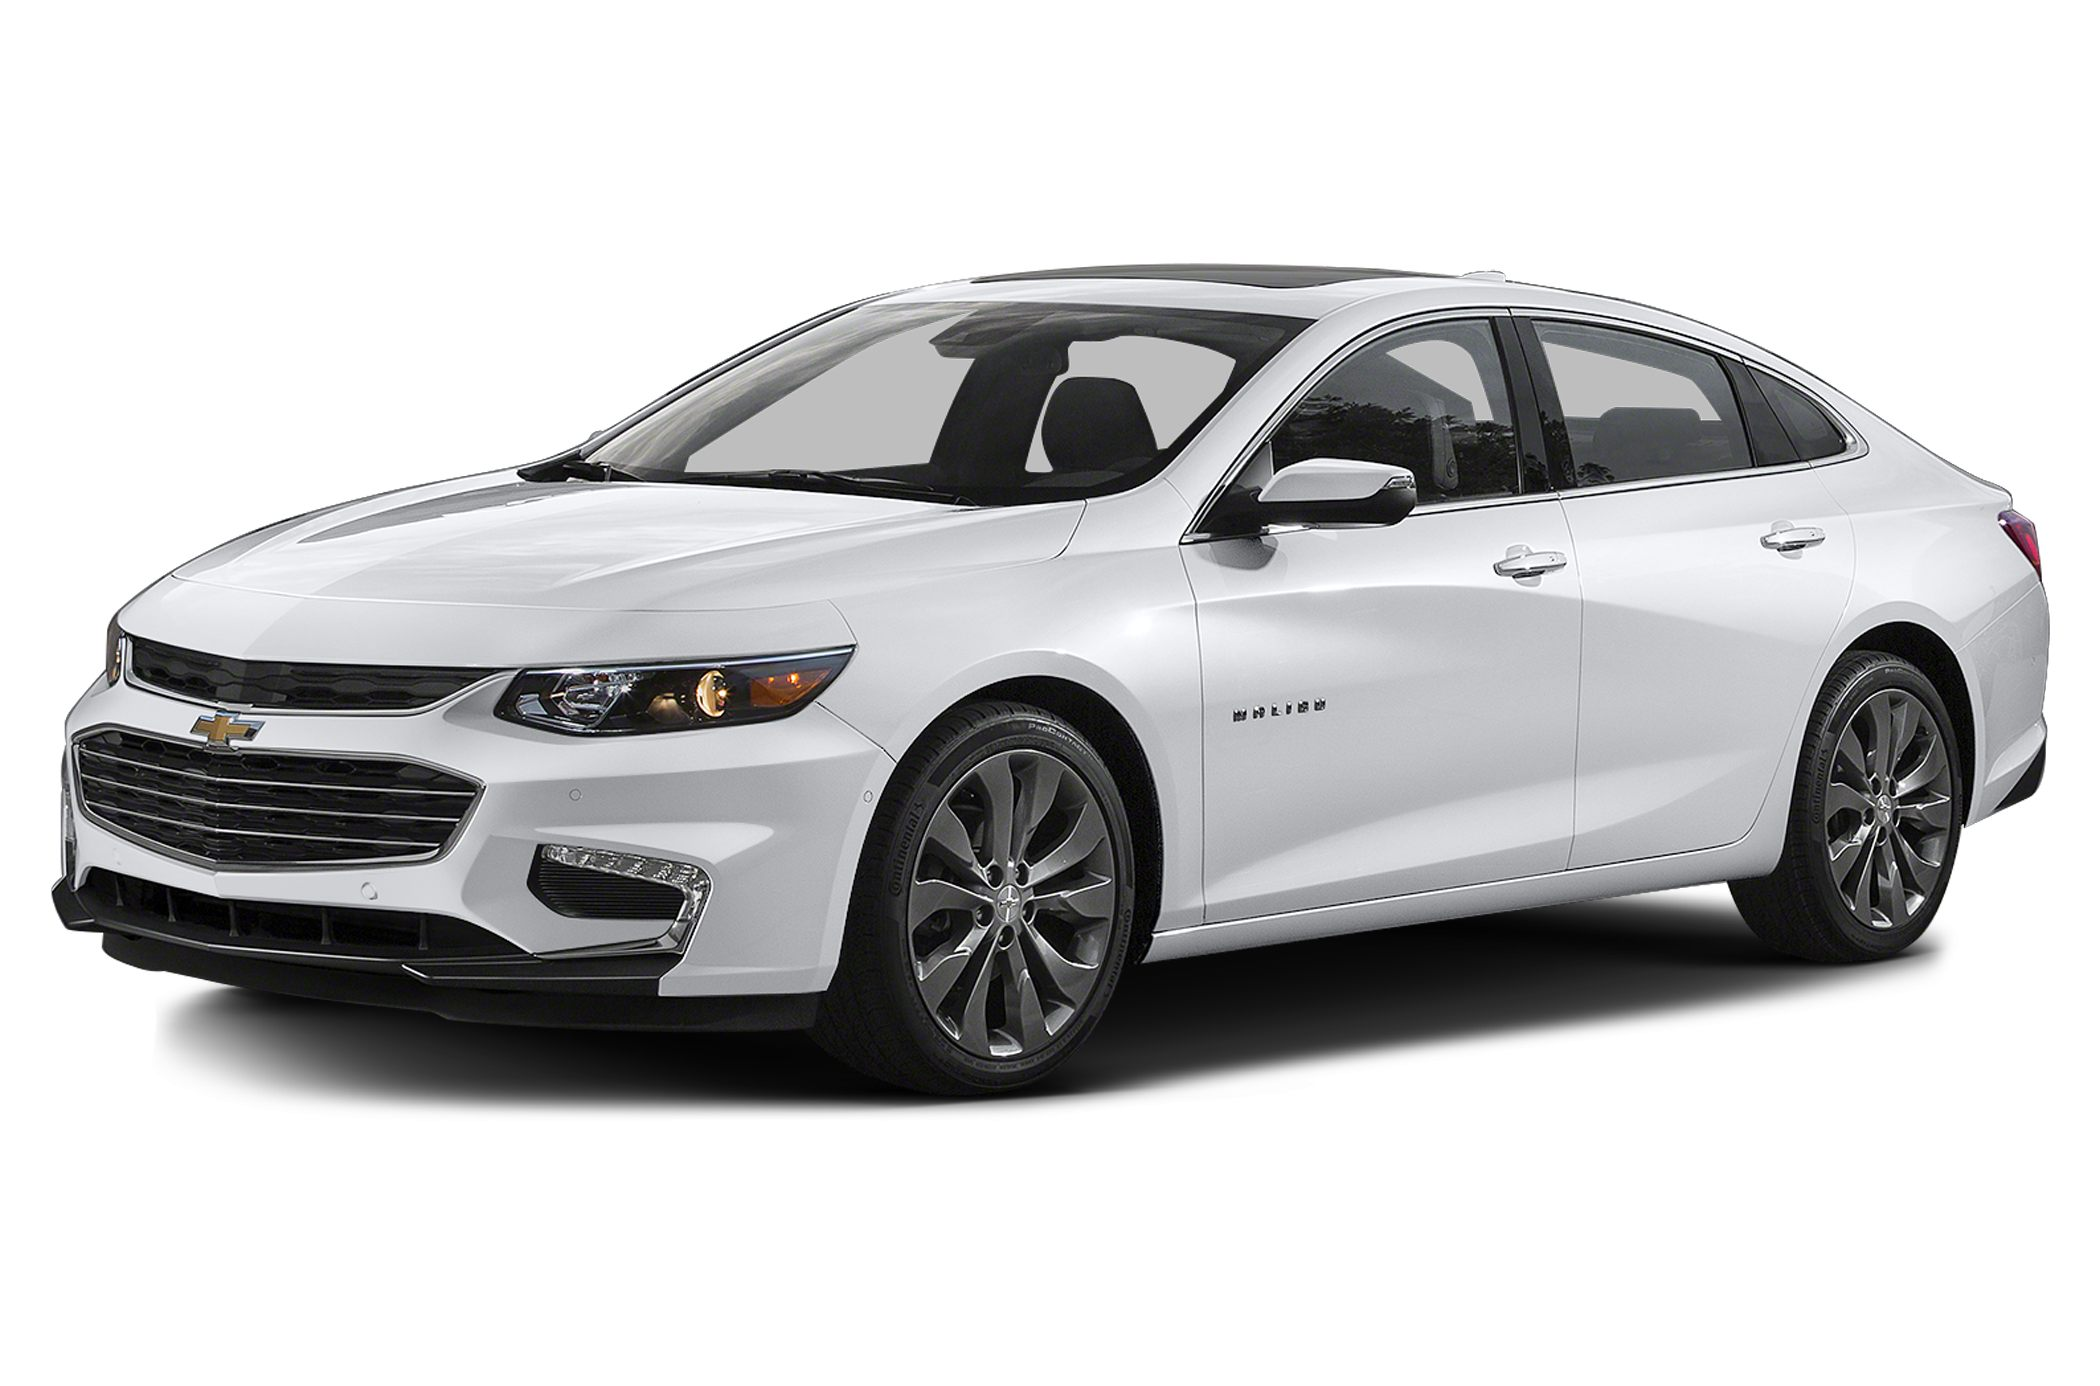 2016 chevy malibu images specs price release date redesign. Black Bedroom Furniture Sets. Home Design Ideas